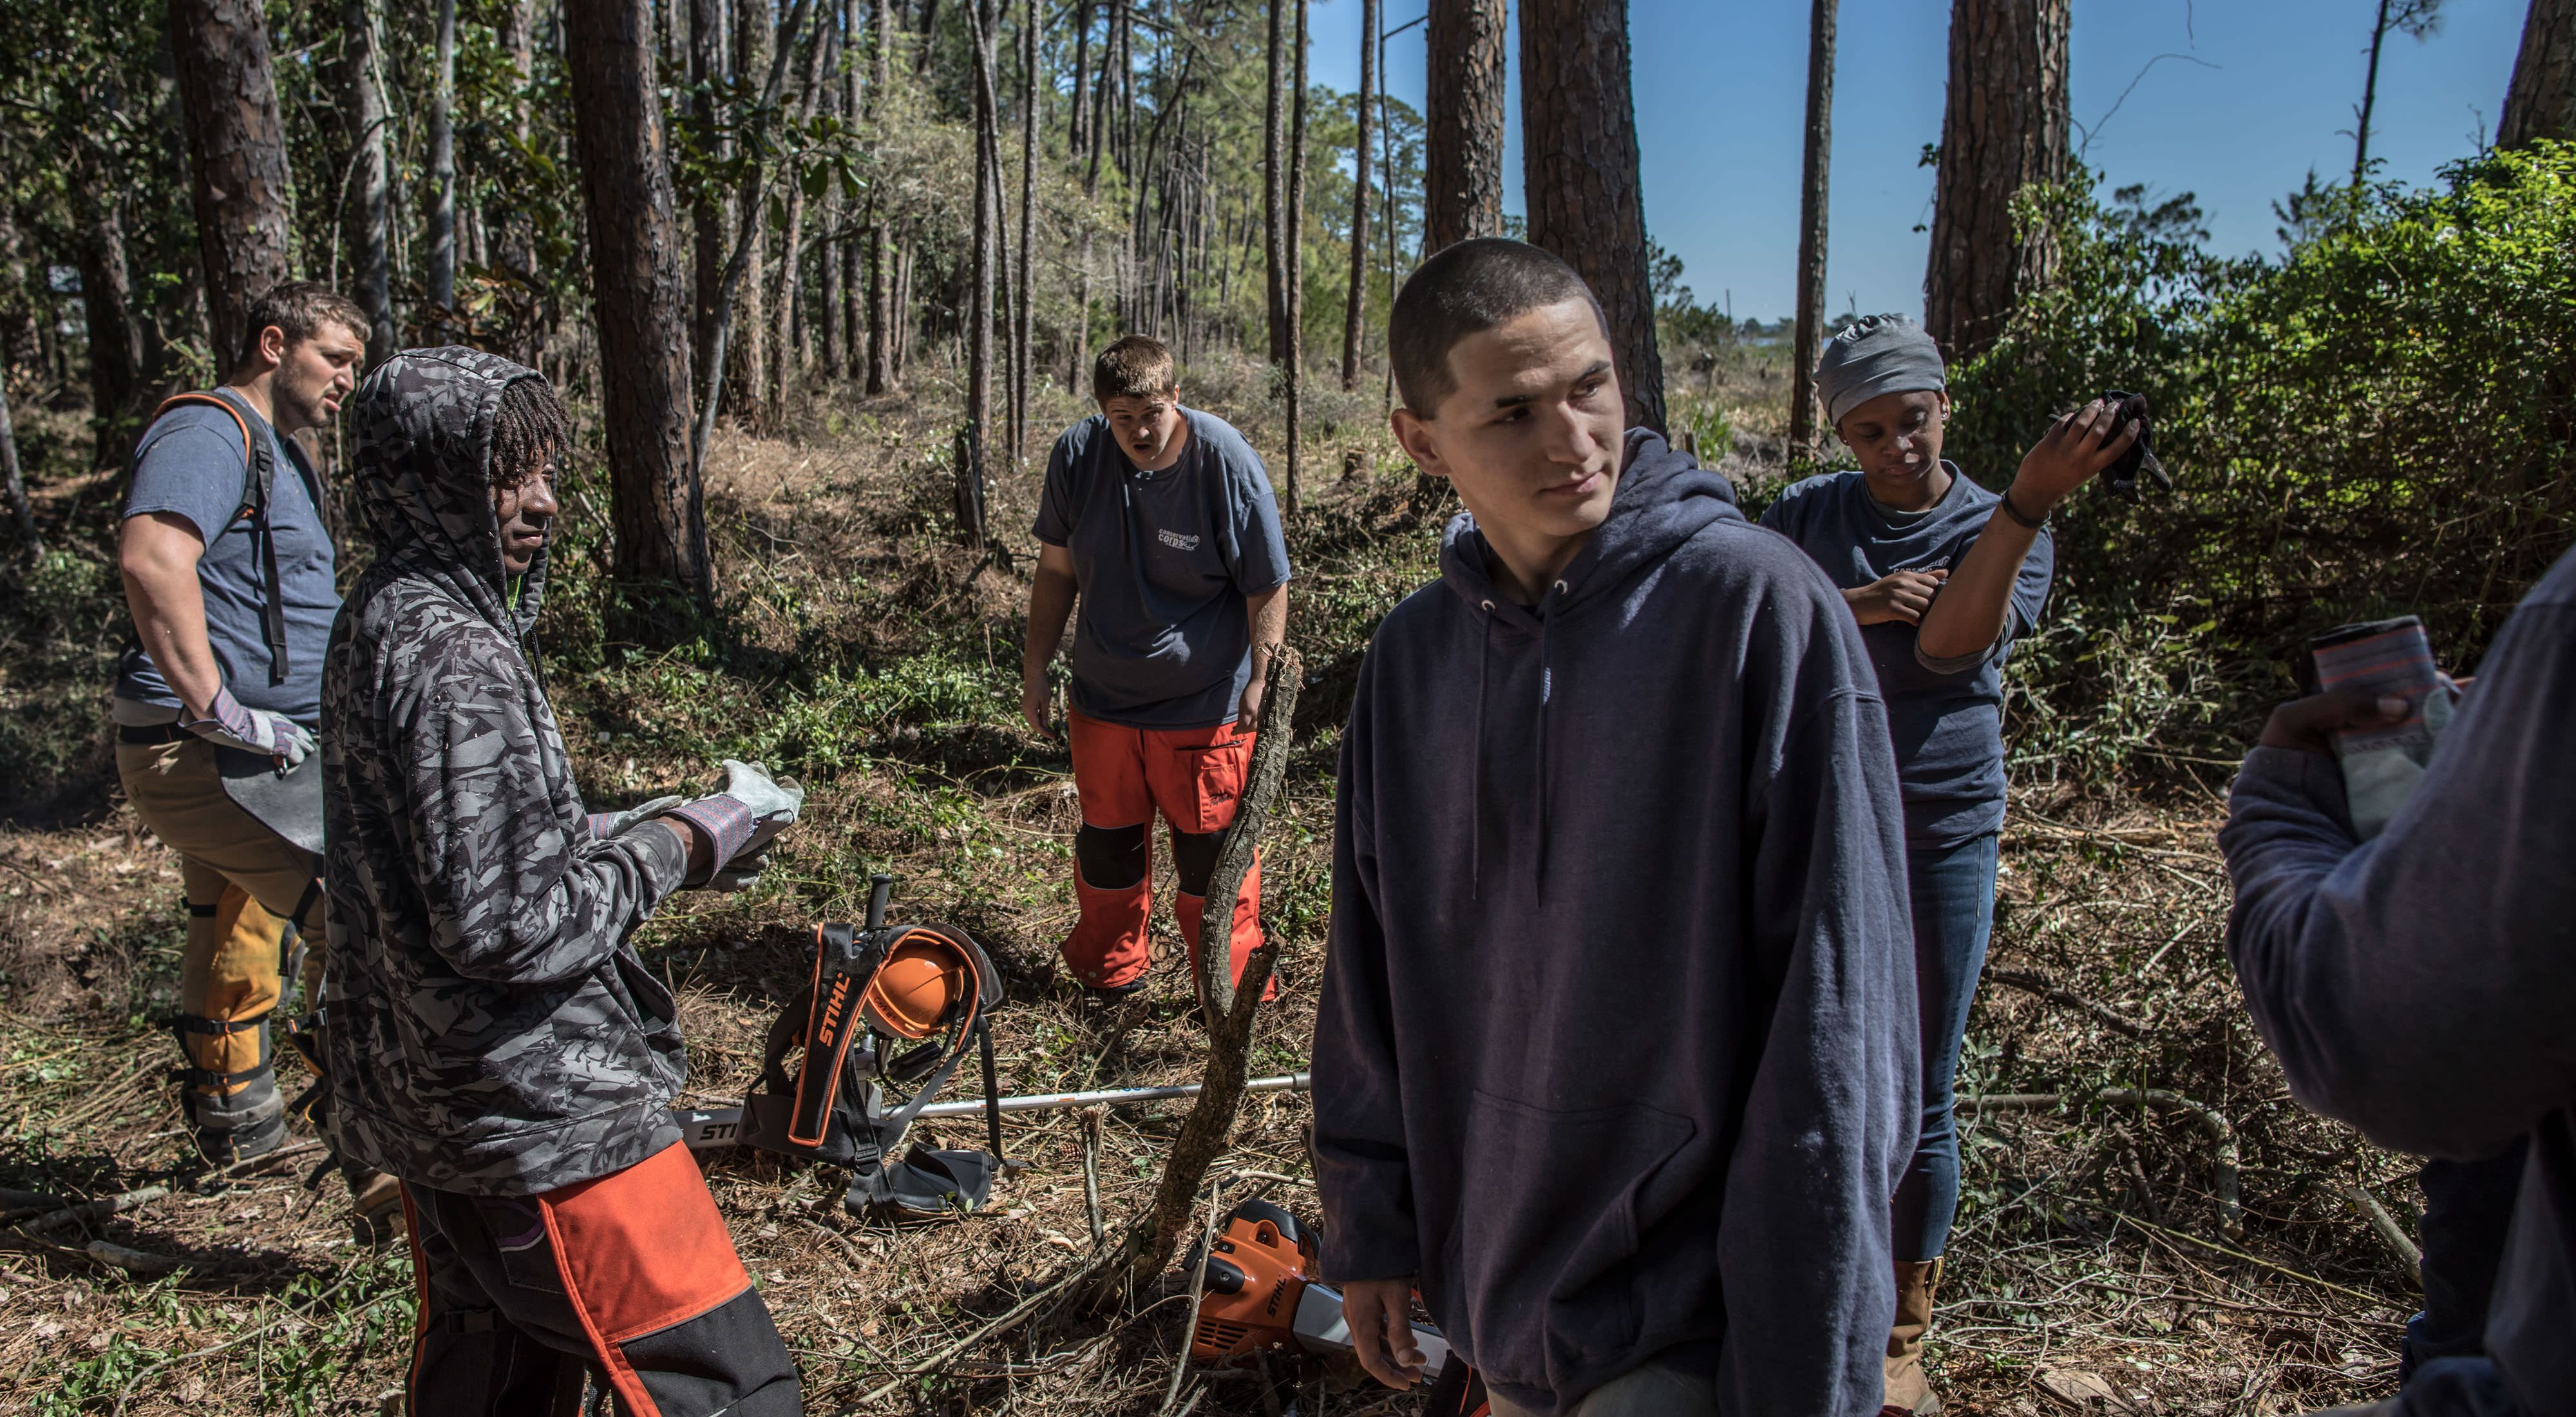 A group of young people with chainsaws and other equipment on a break in a wooded area.